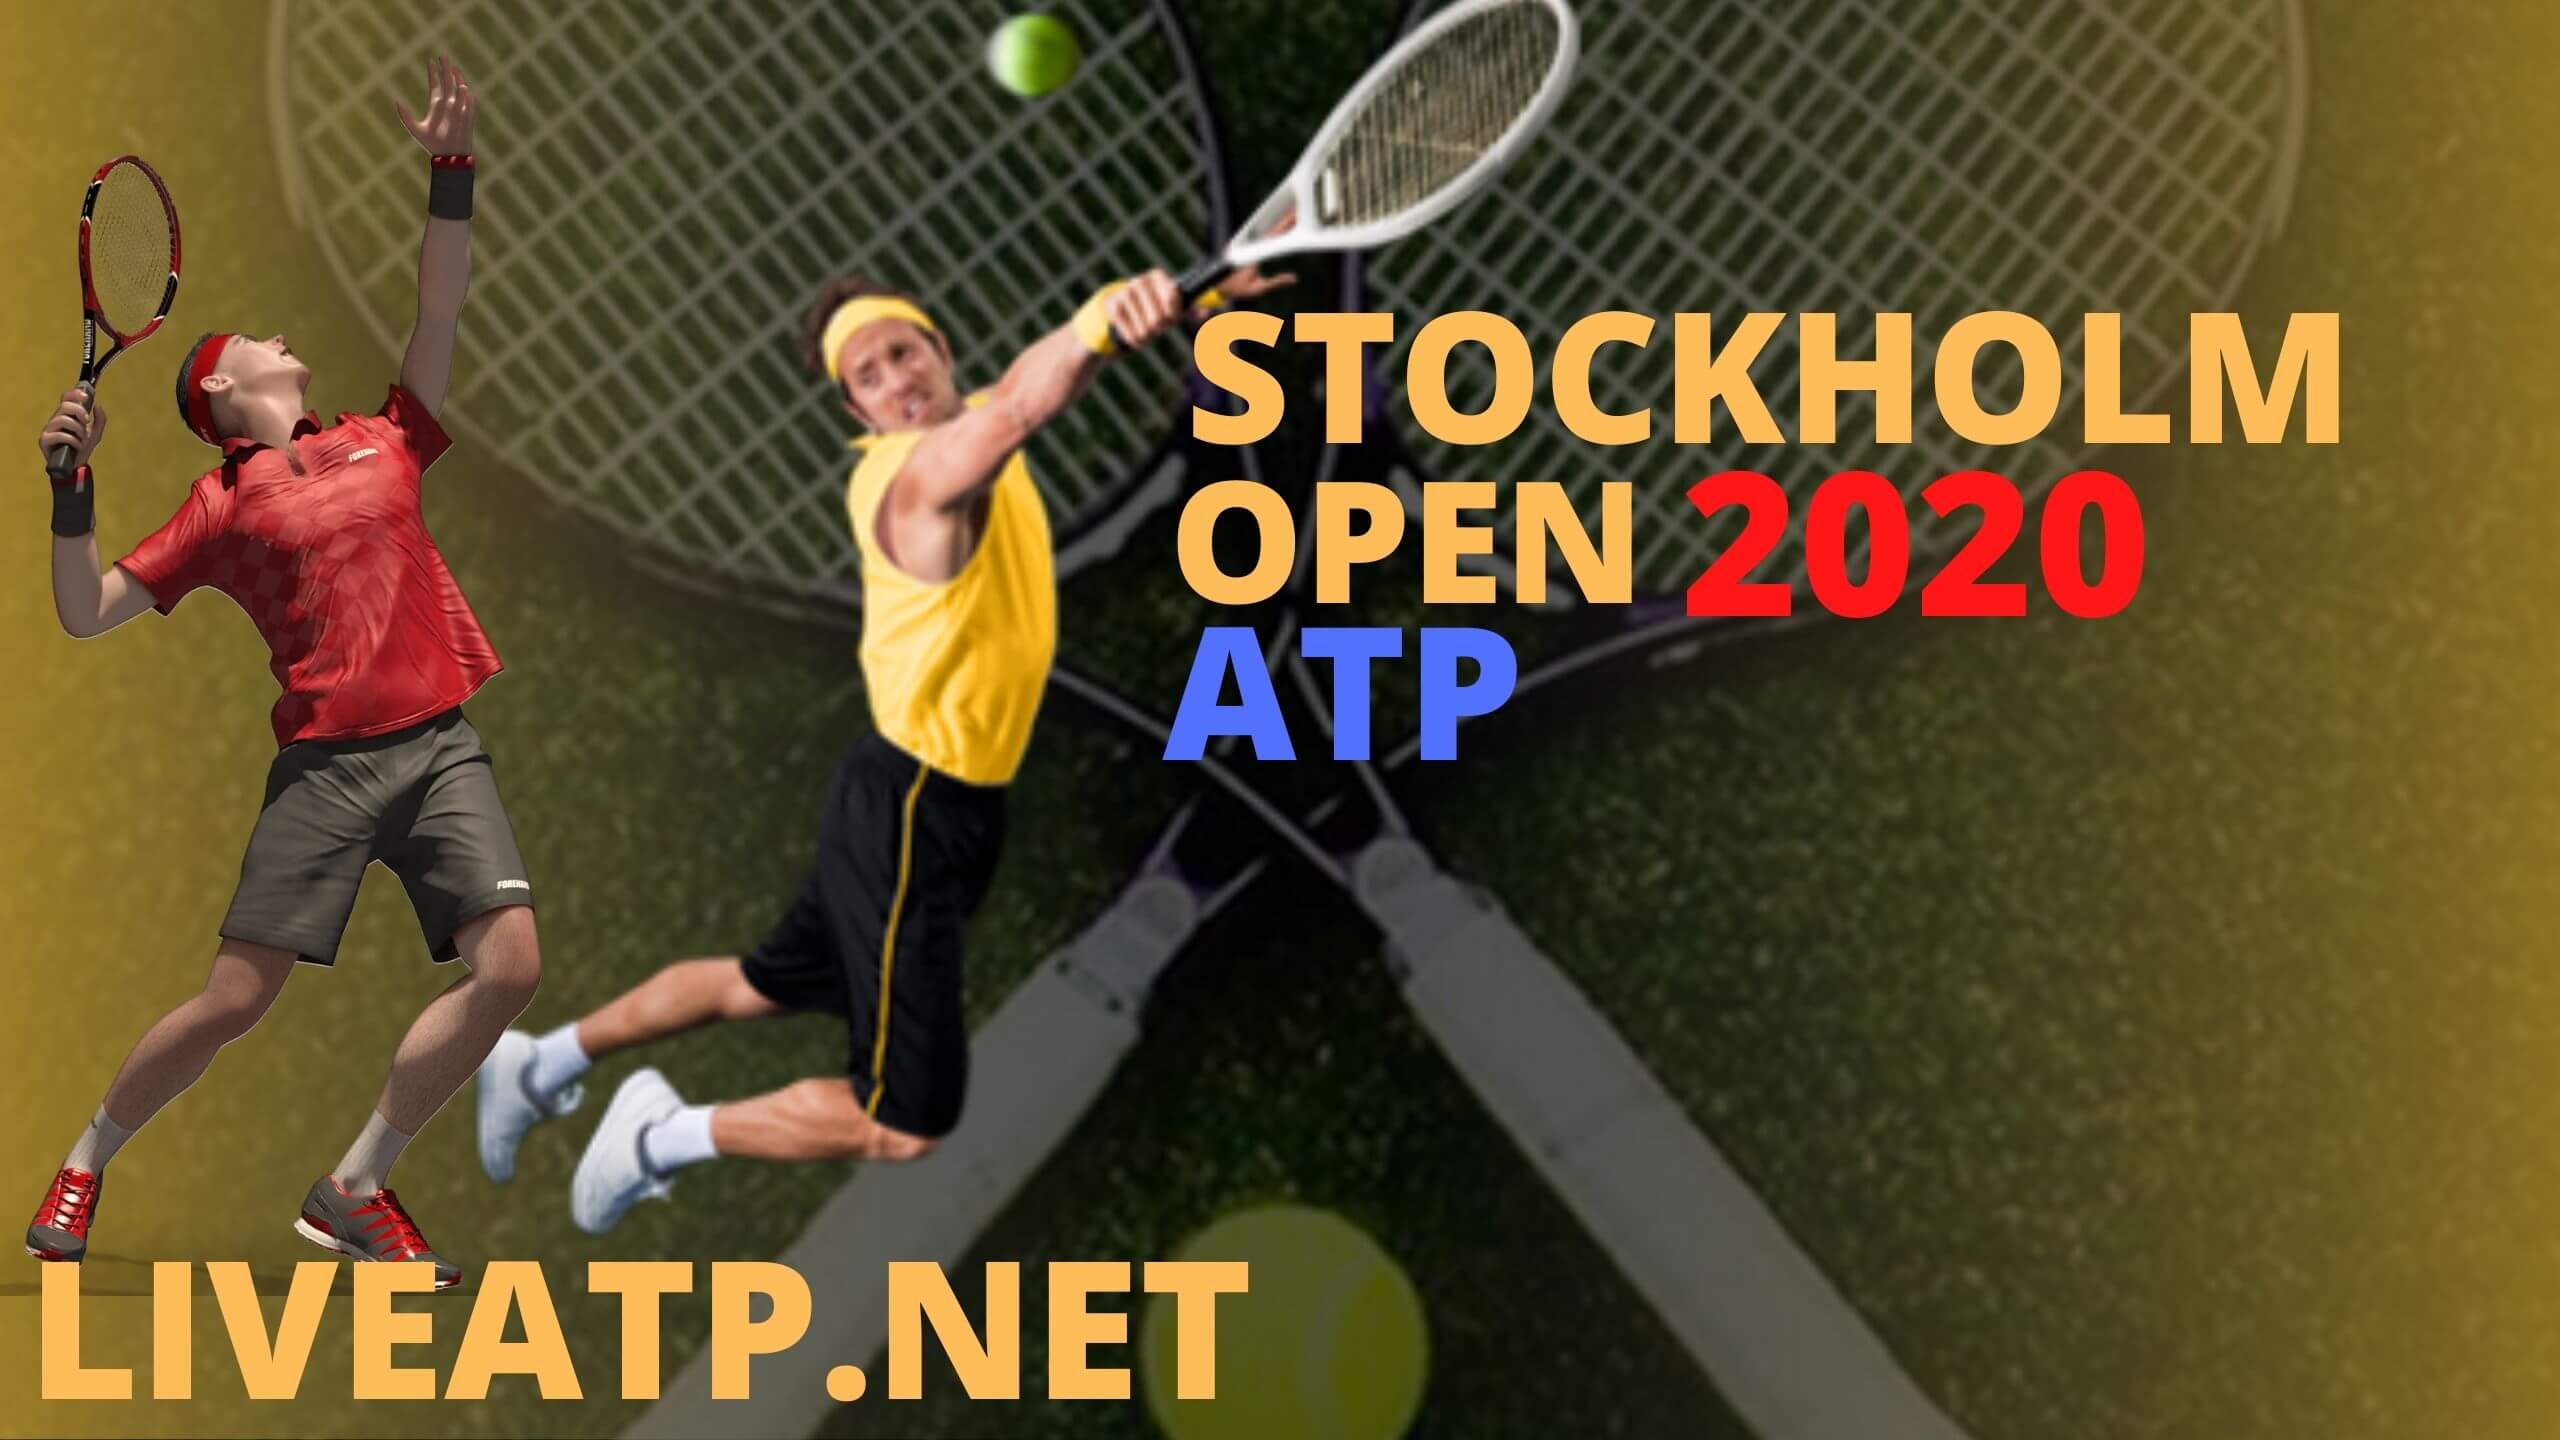 Stockholm Open Live Stream 2020 | Day 1